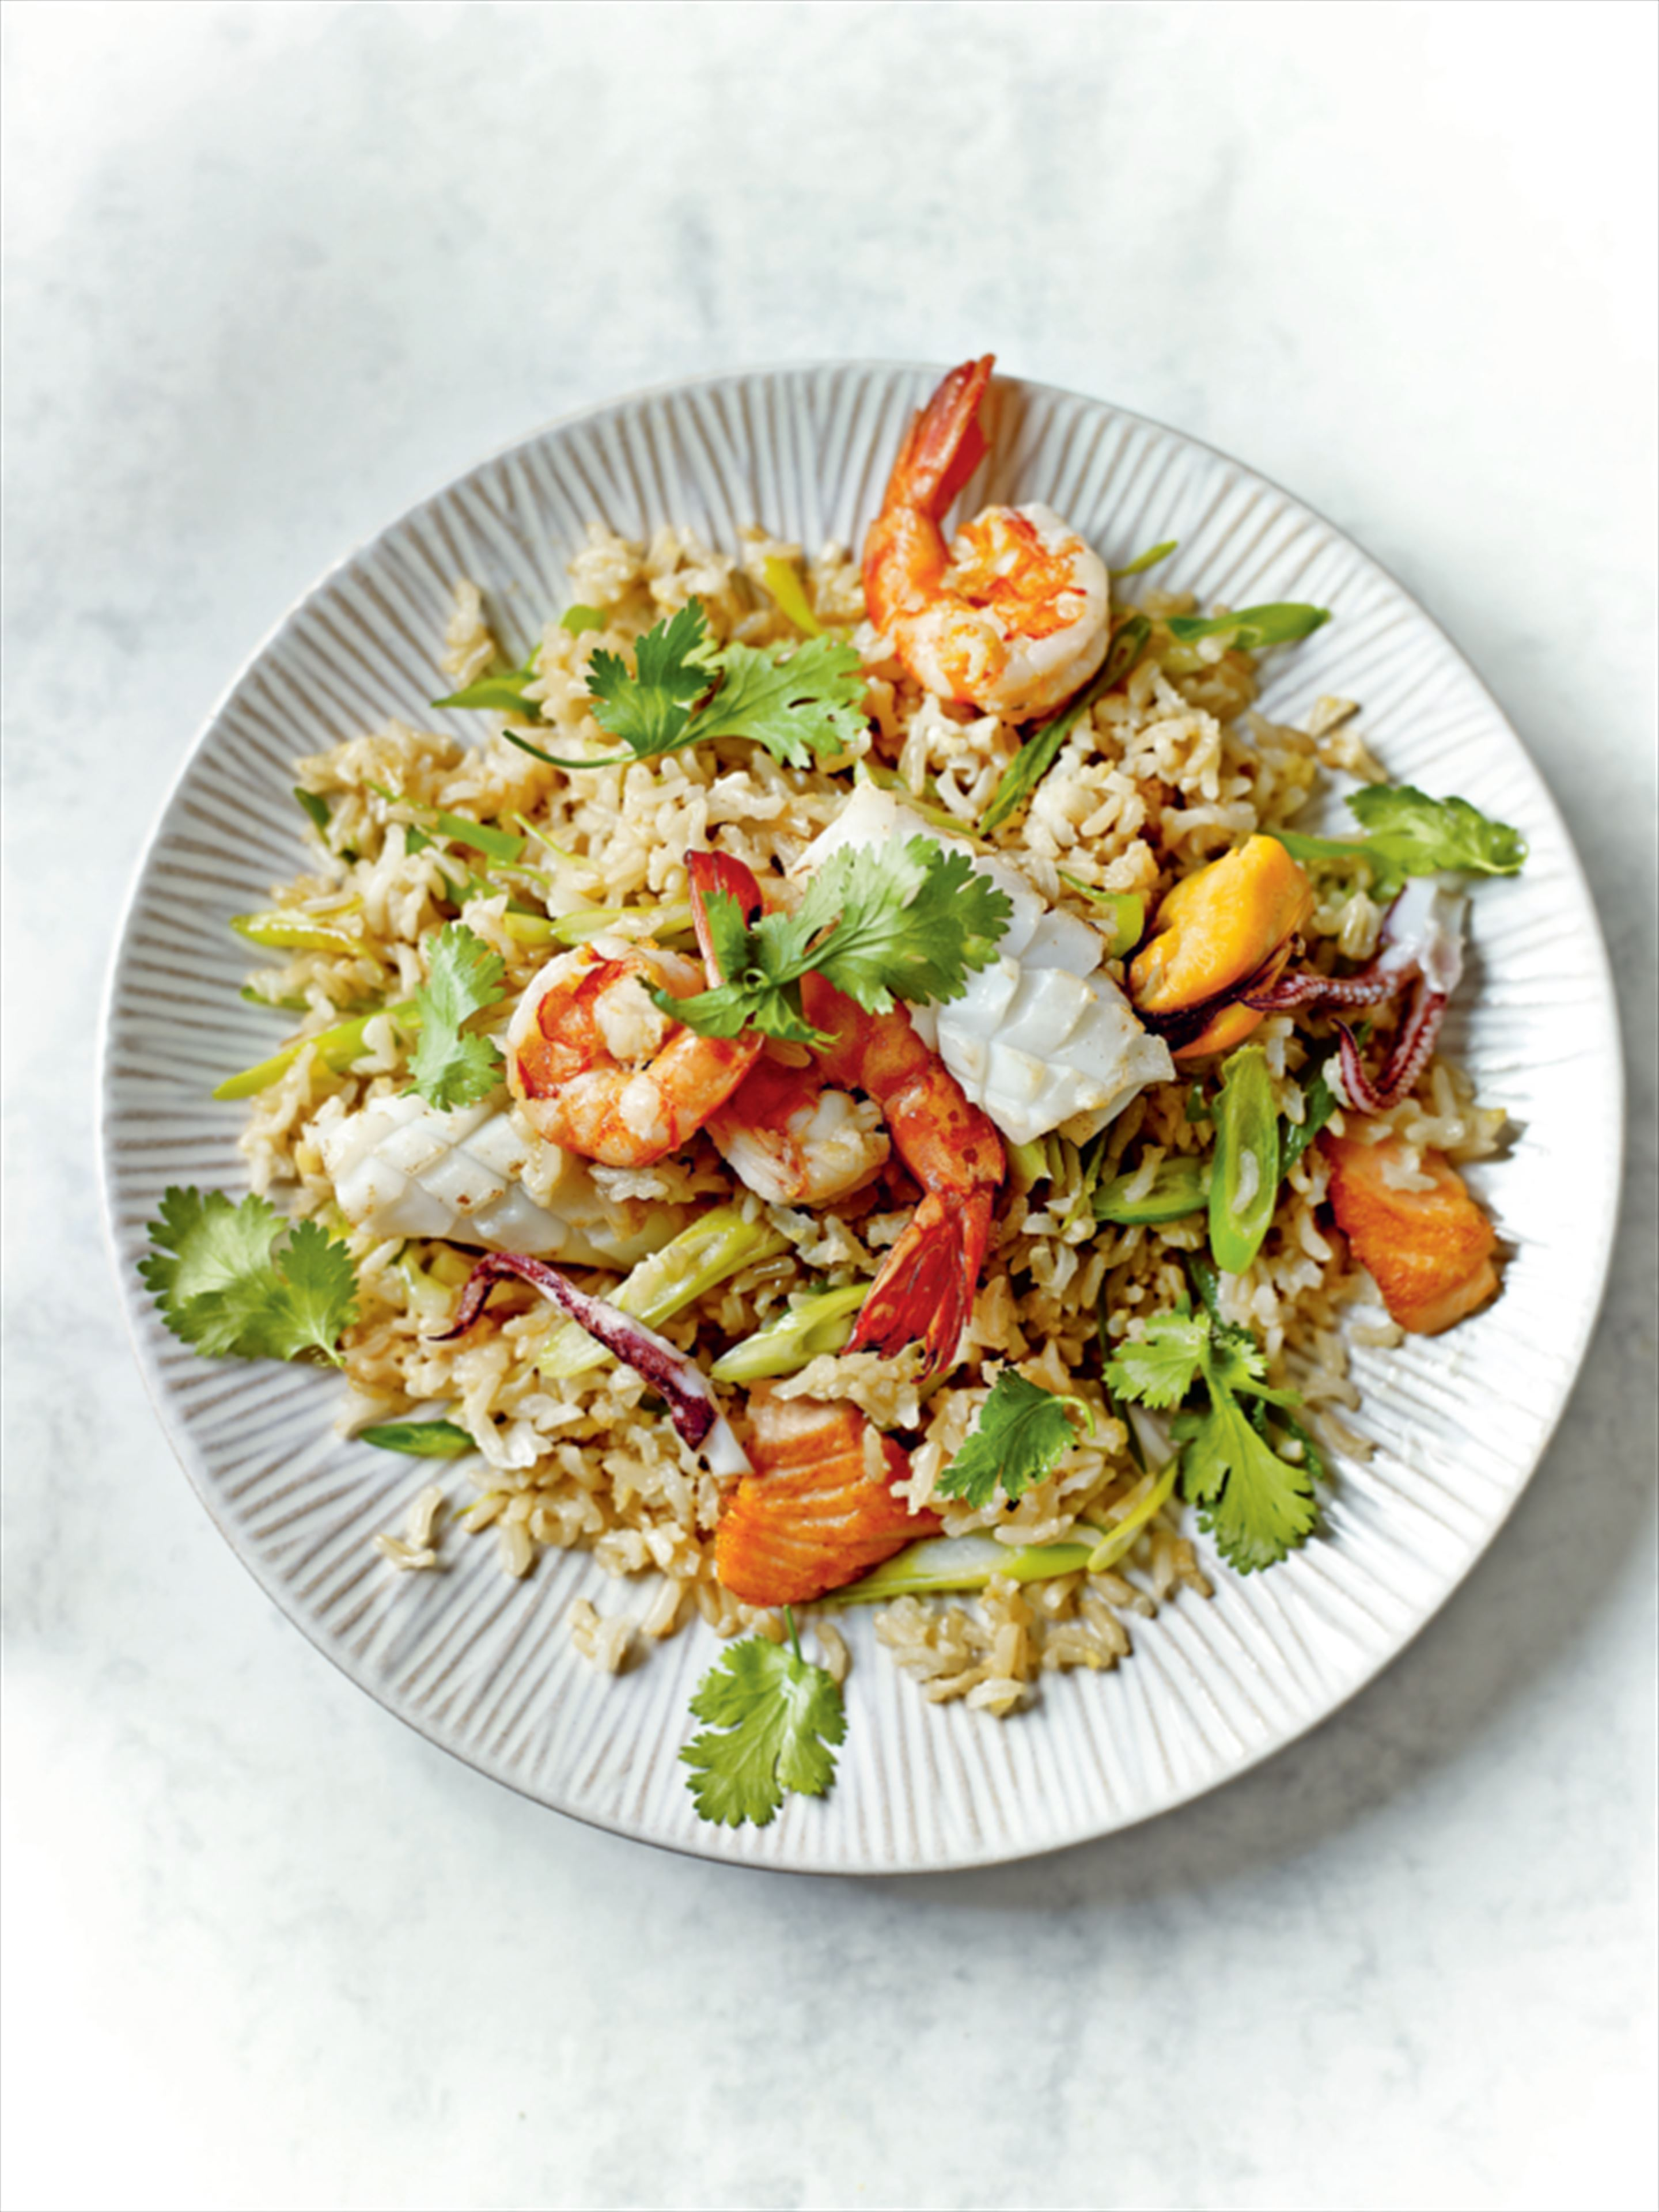 Seafood brown rice with lemon grass and coriander